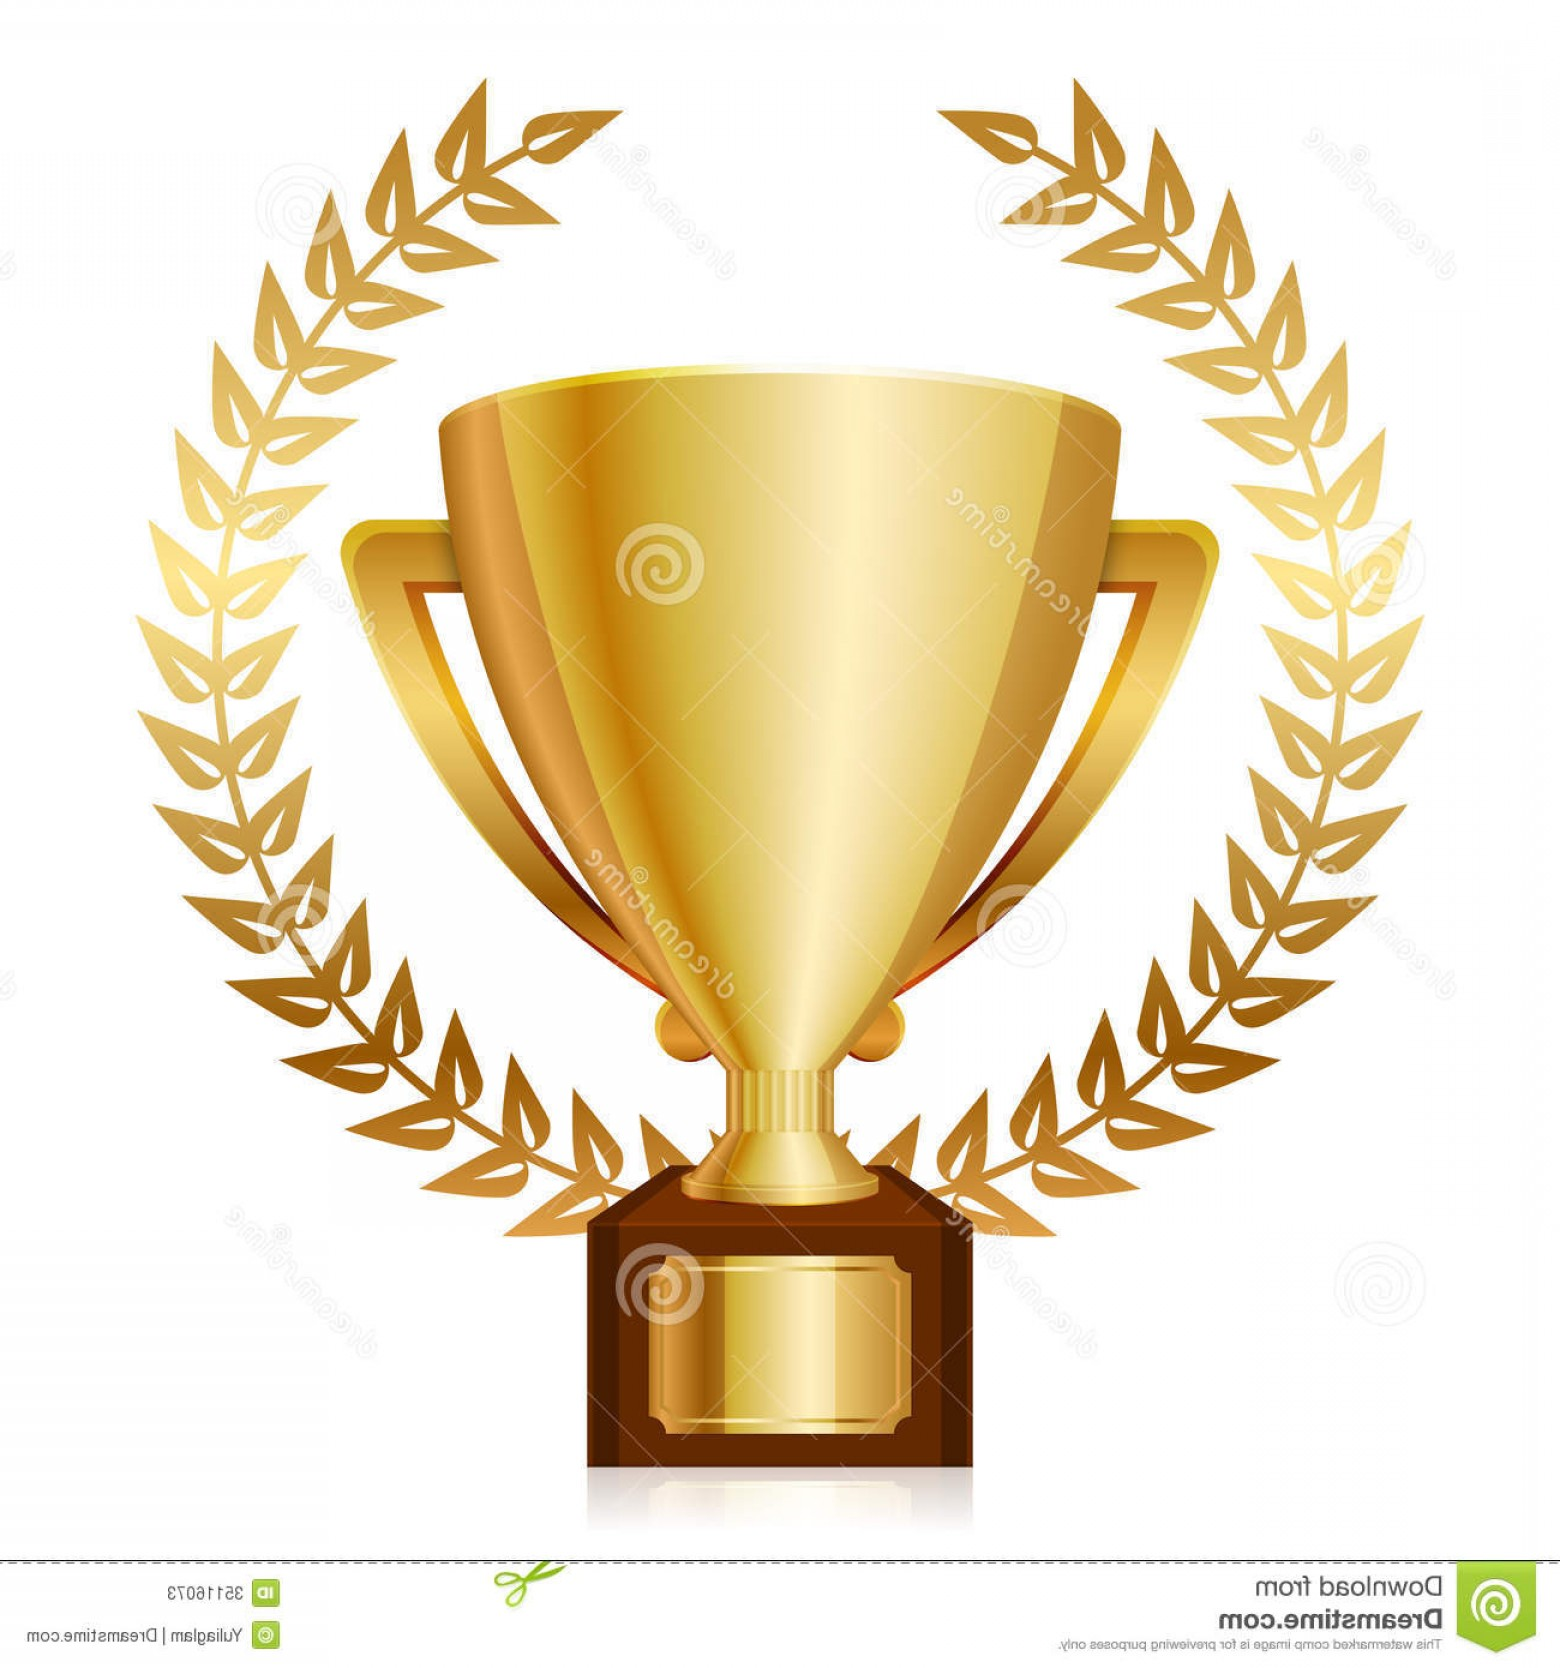 Gold Trophy Vector: Stock Photos Gold Shiny Trophy Laurels Vector Illustration Image